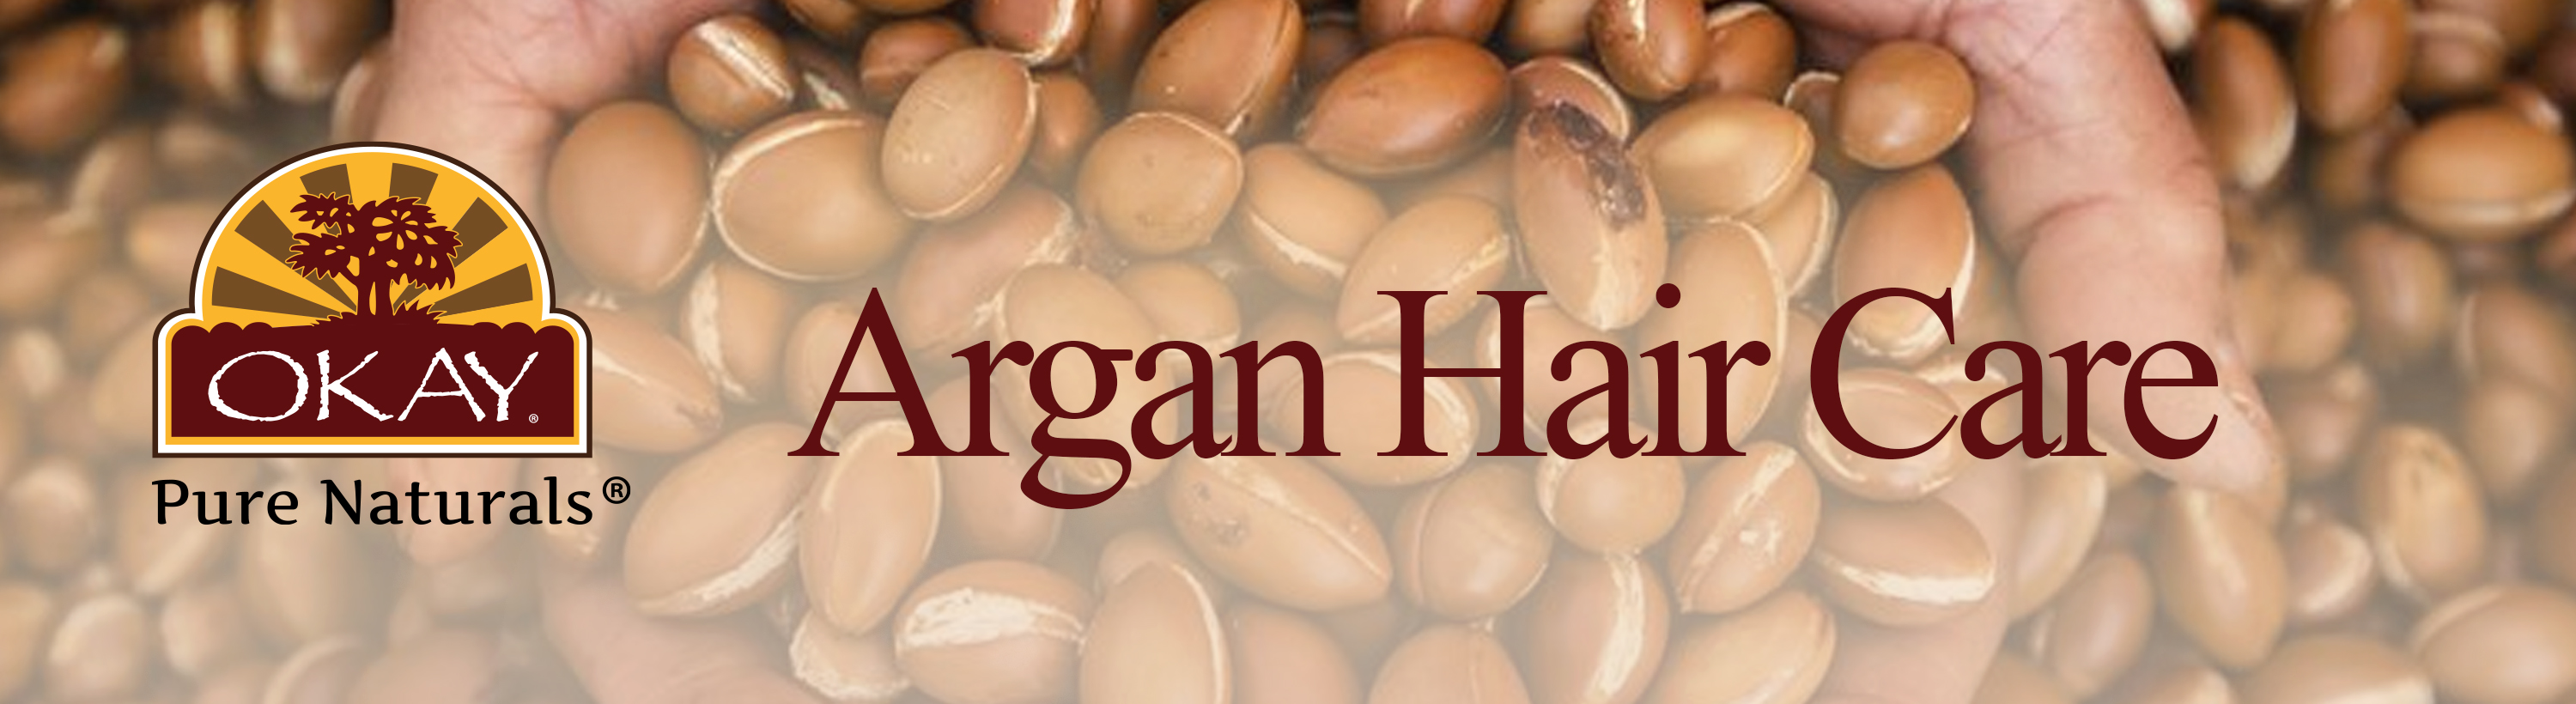 argan-hair-care.jpg